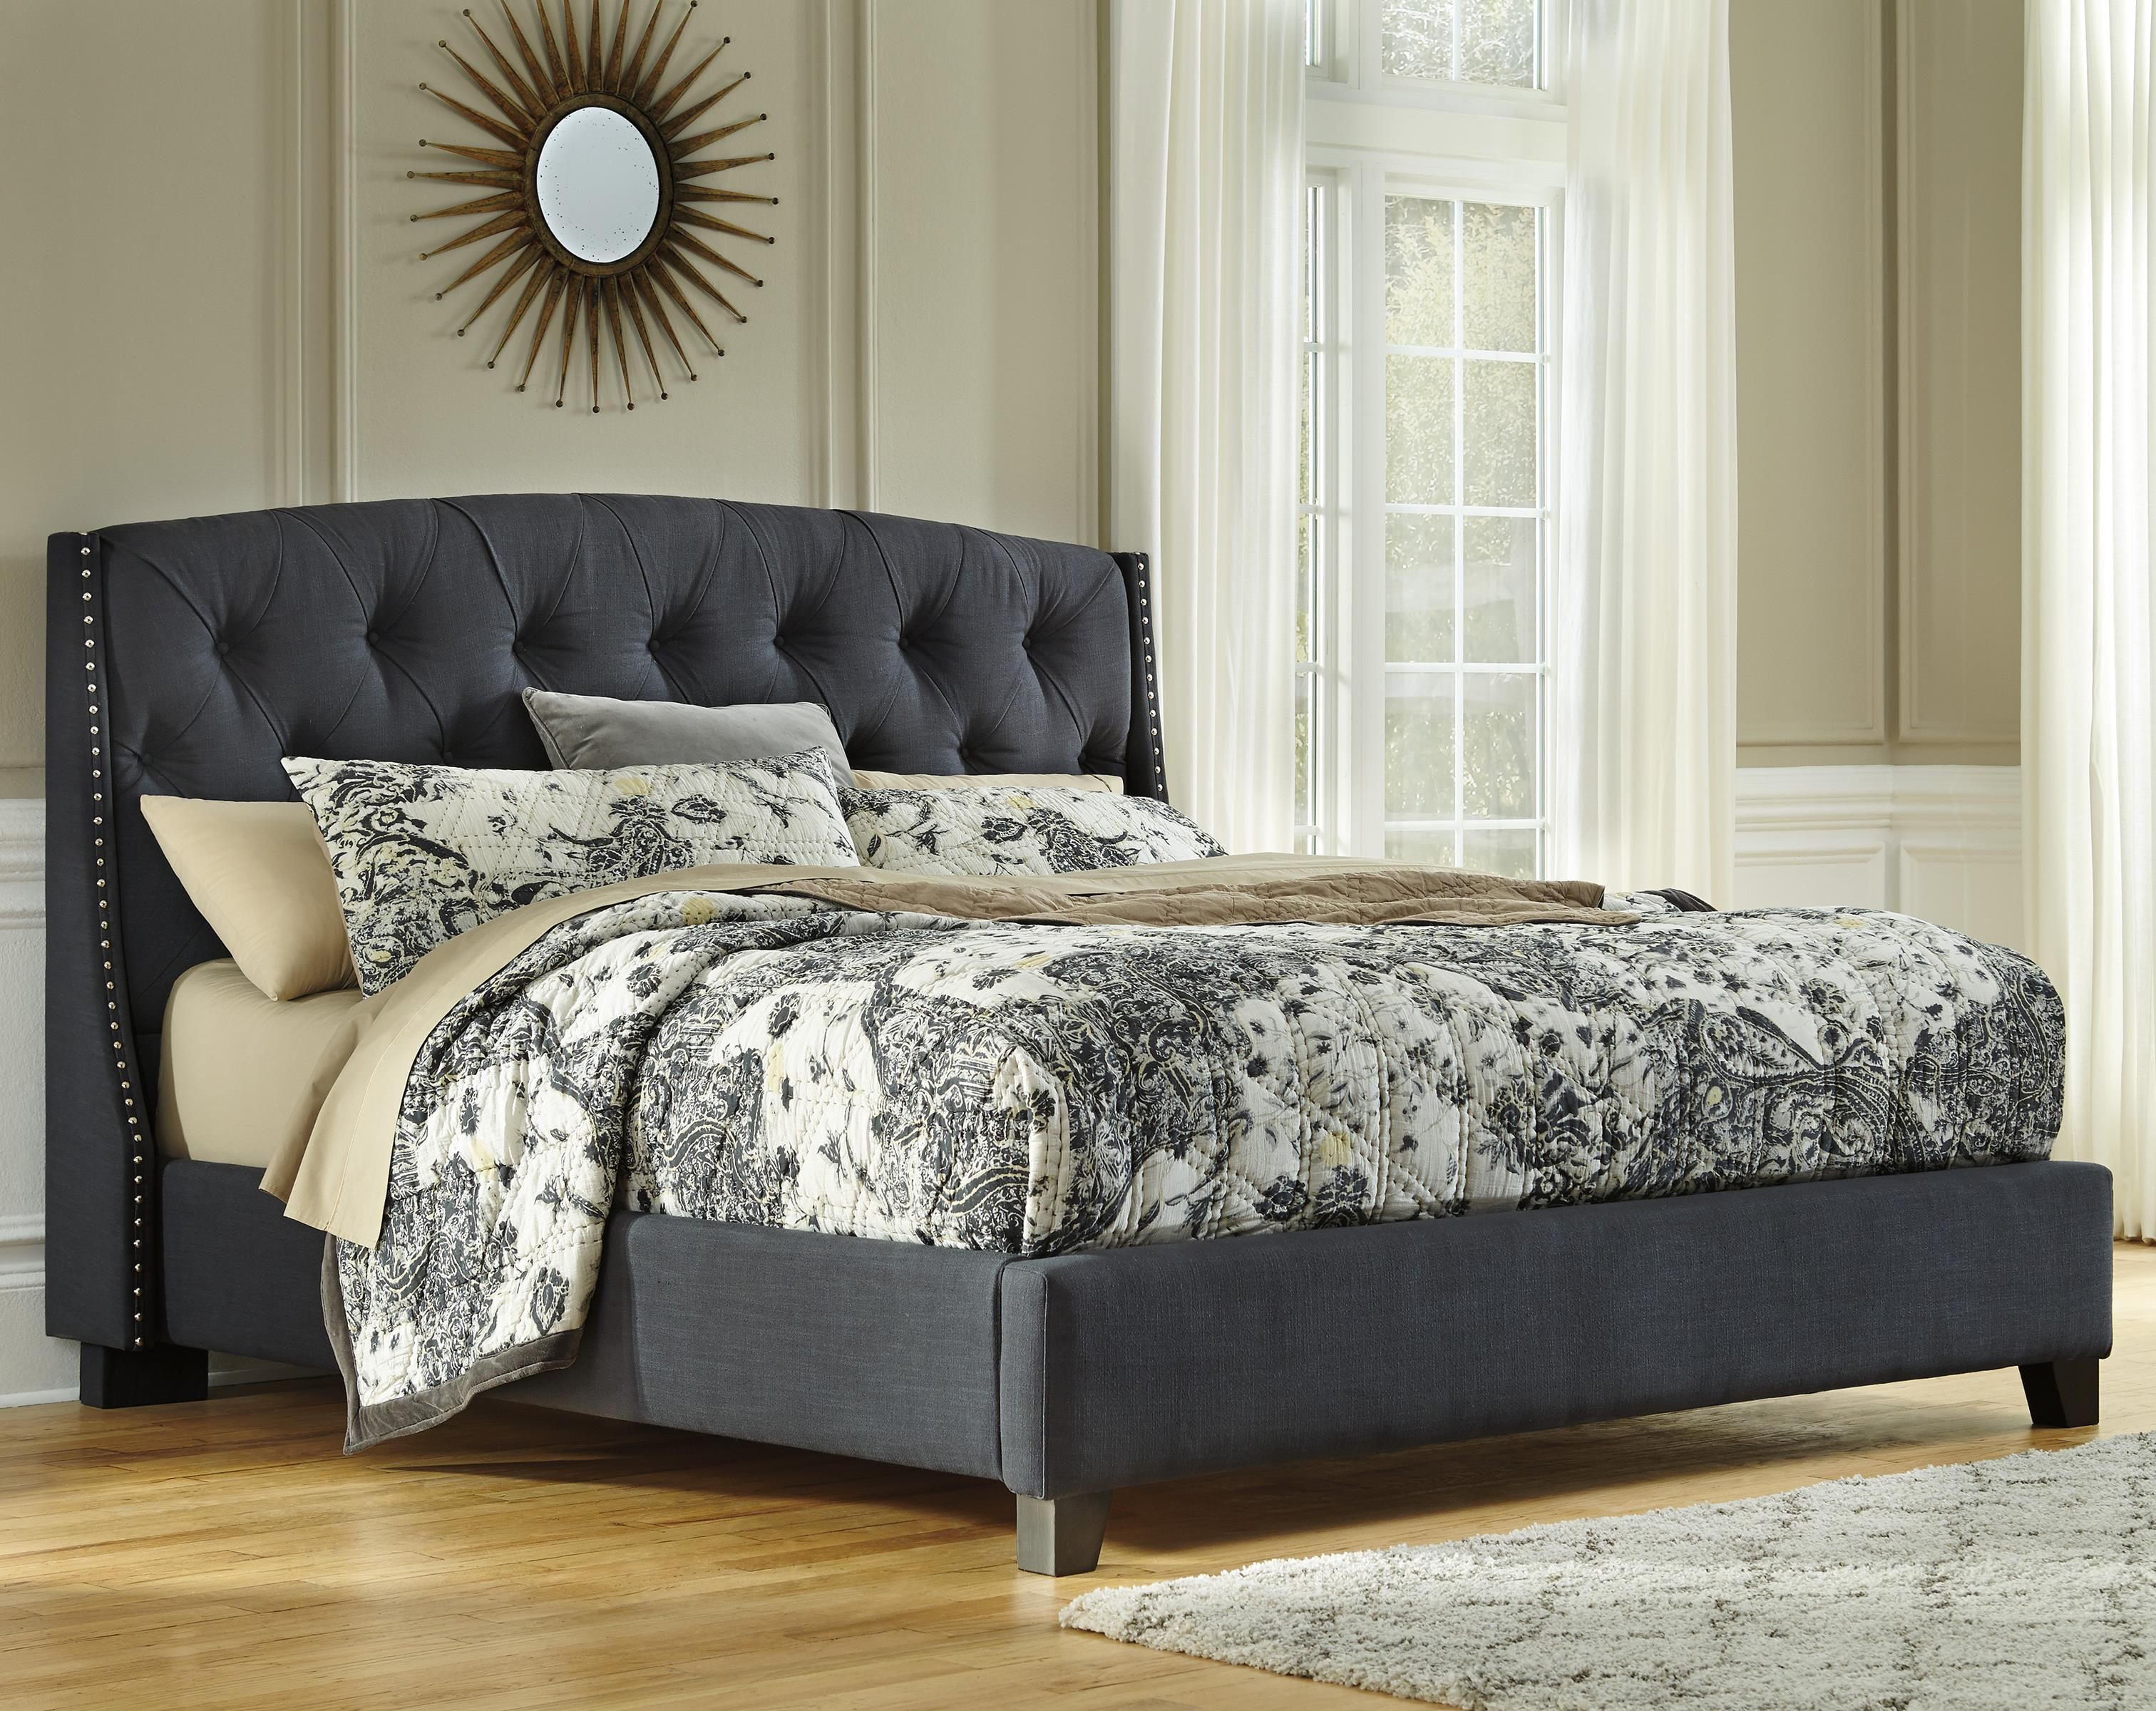 Best Signature Design By Ashley Kasidon King Upholstered Bed Item Number B600 558 556 597 Grey 400 x 300